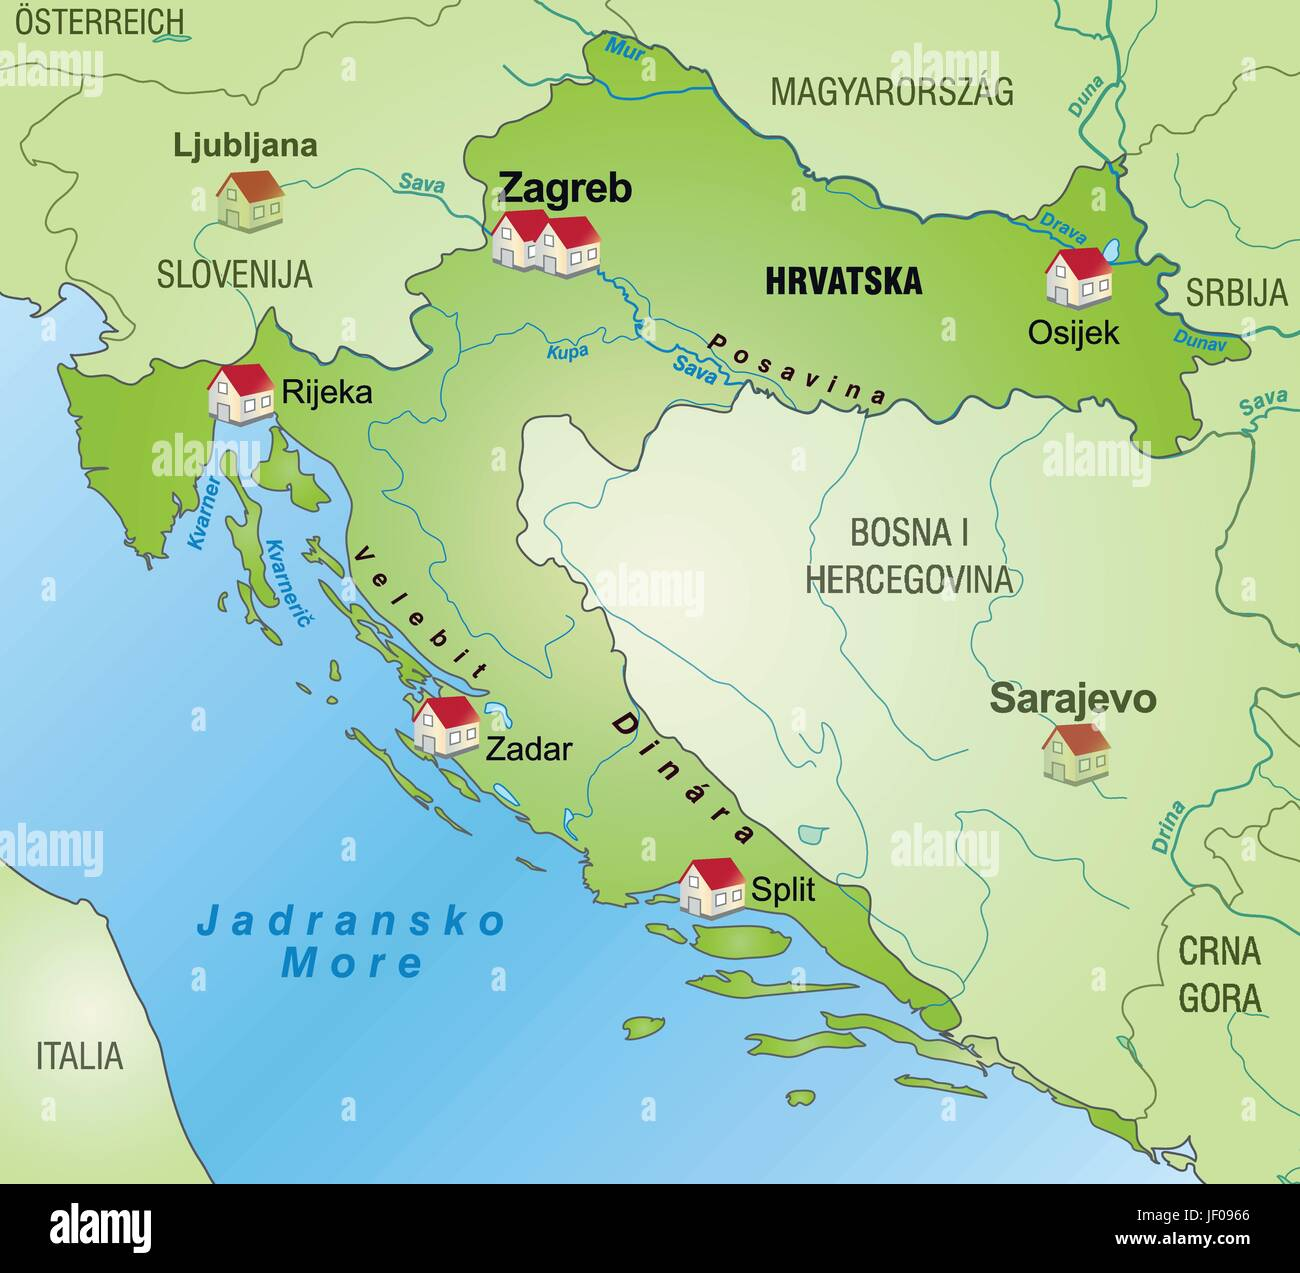 Border card croatia synopsis borders atlas map of the world border card croatia synopsis borders atlas map of the world map gumiabroncs Image collections